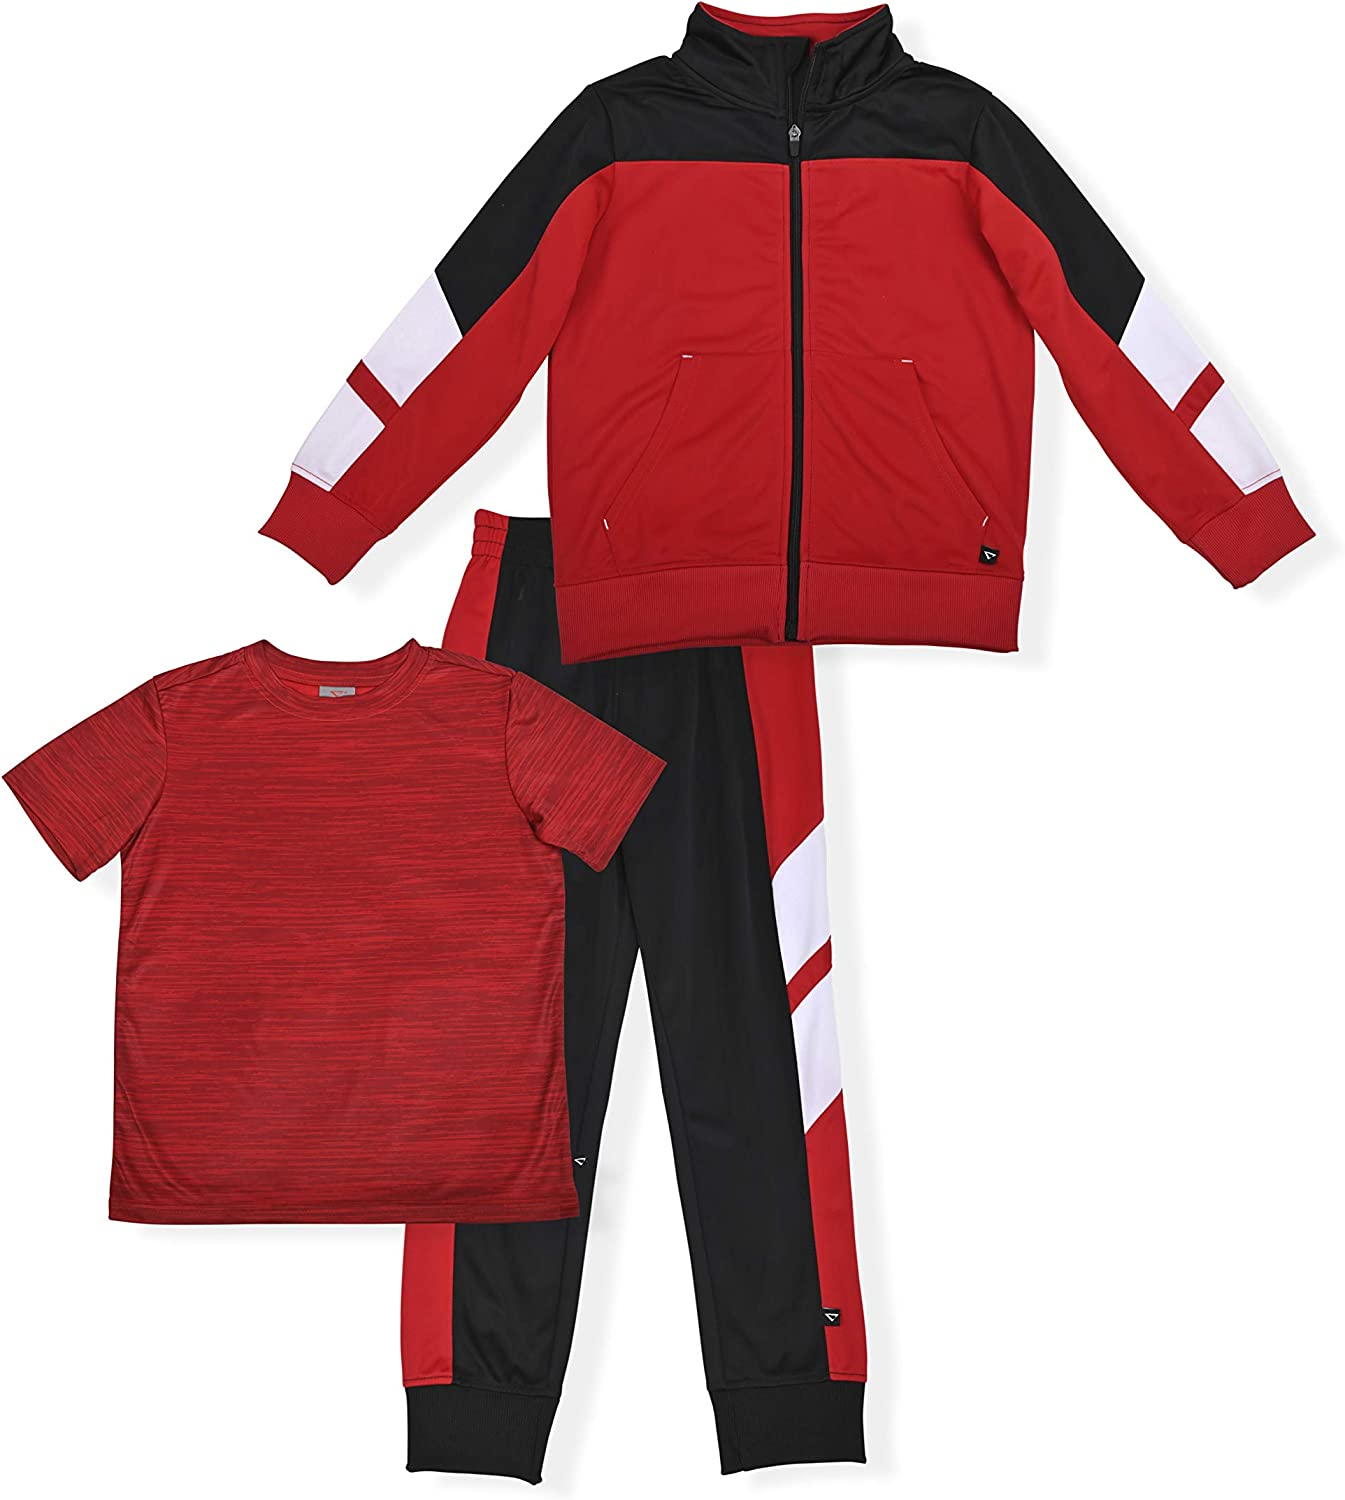 Cheetah Boys' 3 Piece Jogger Set with Jacket, T-Shirt and...